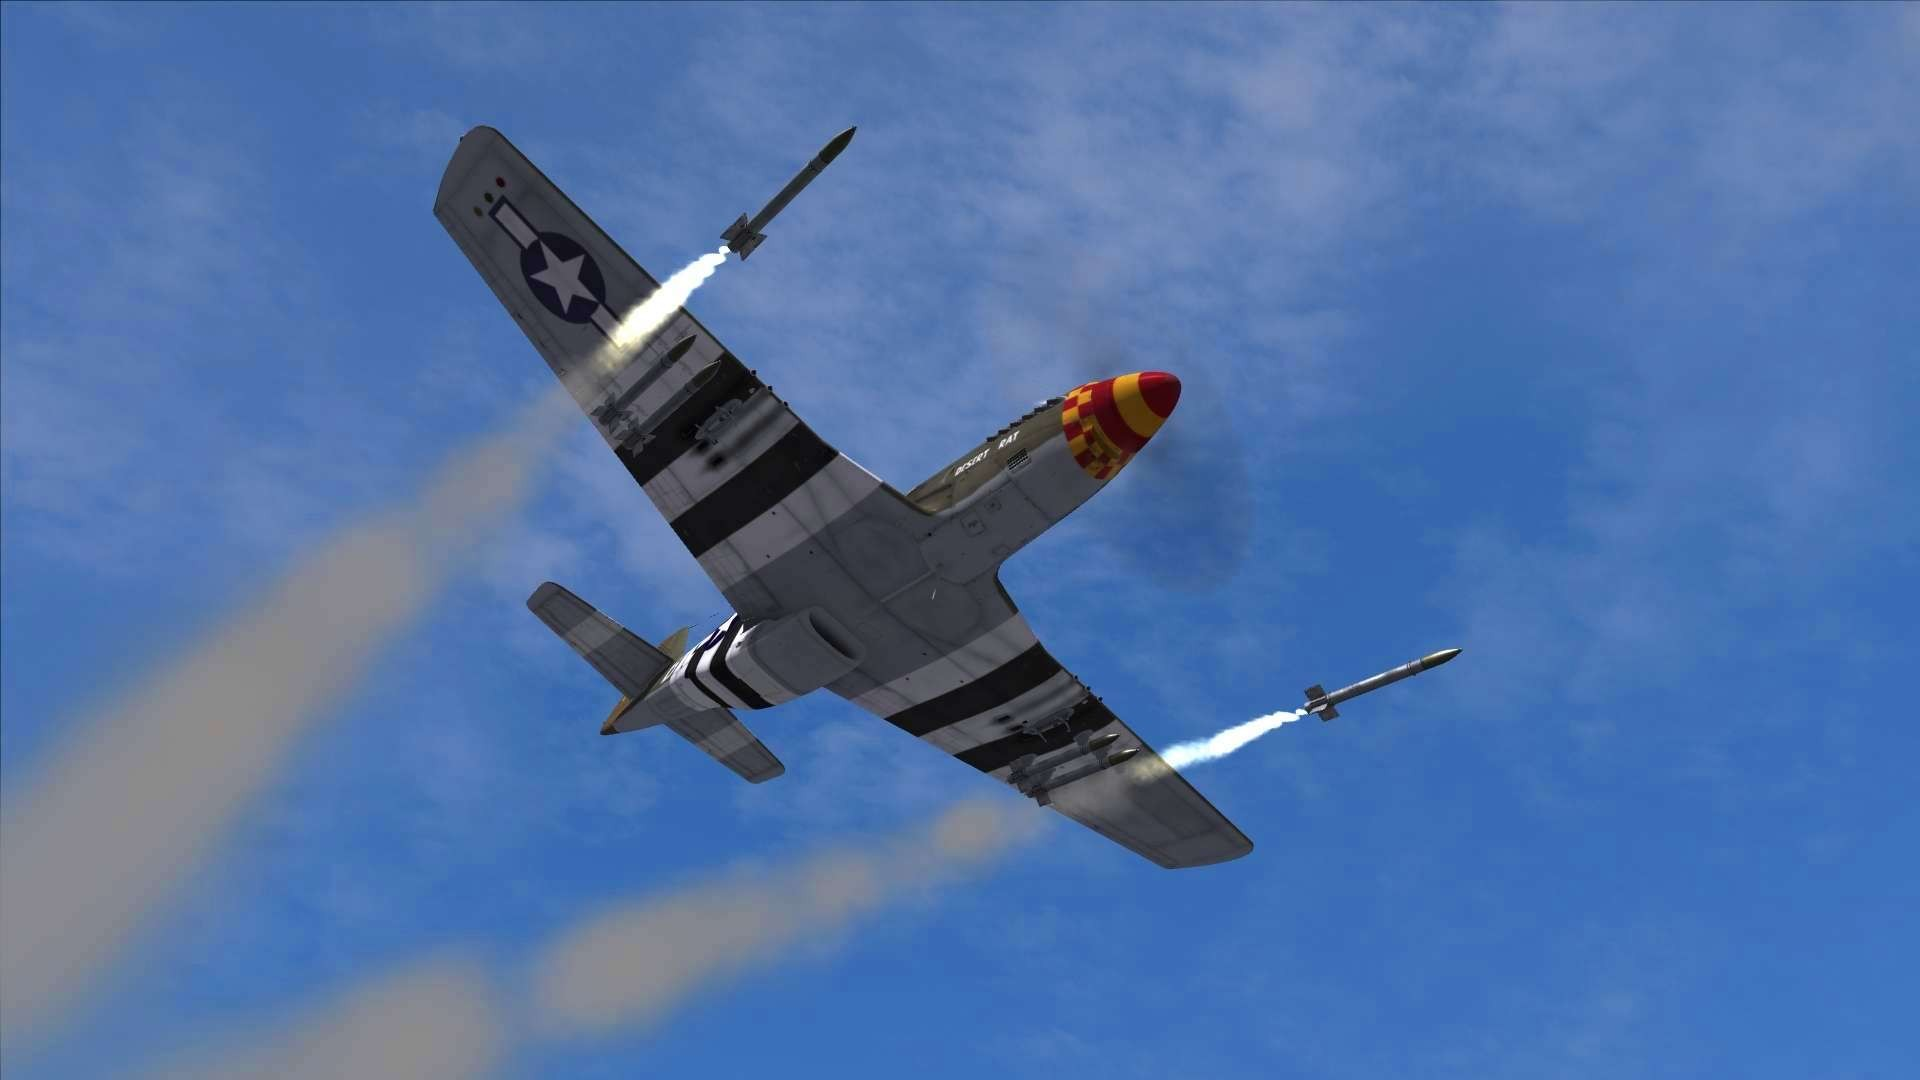 North American P 51 Mustang Computer Wallpapers Desktop Backgrounds 1920x1080